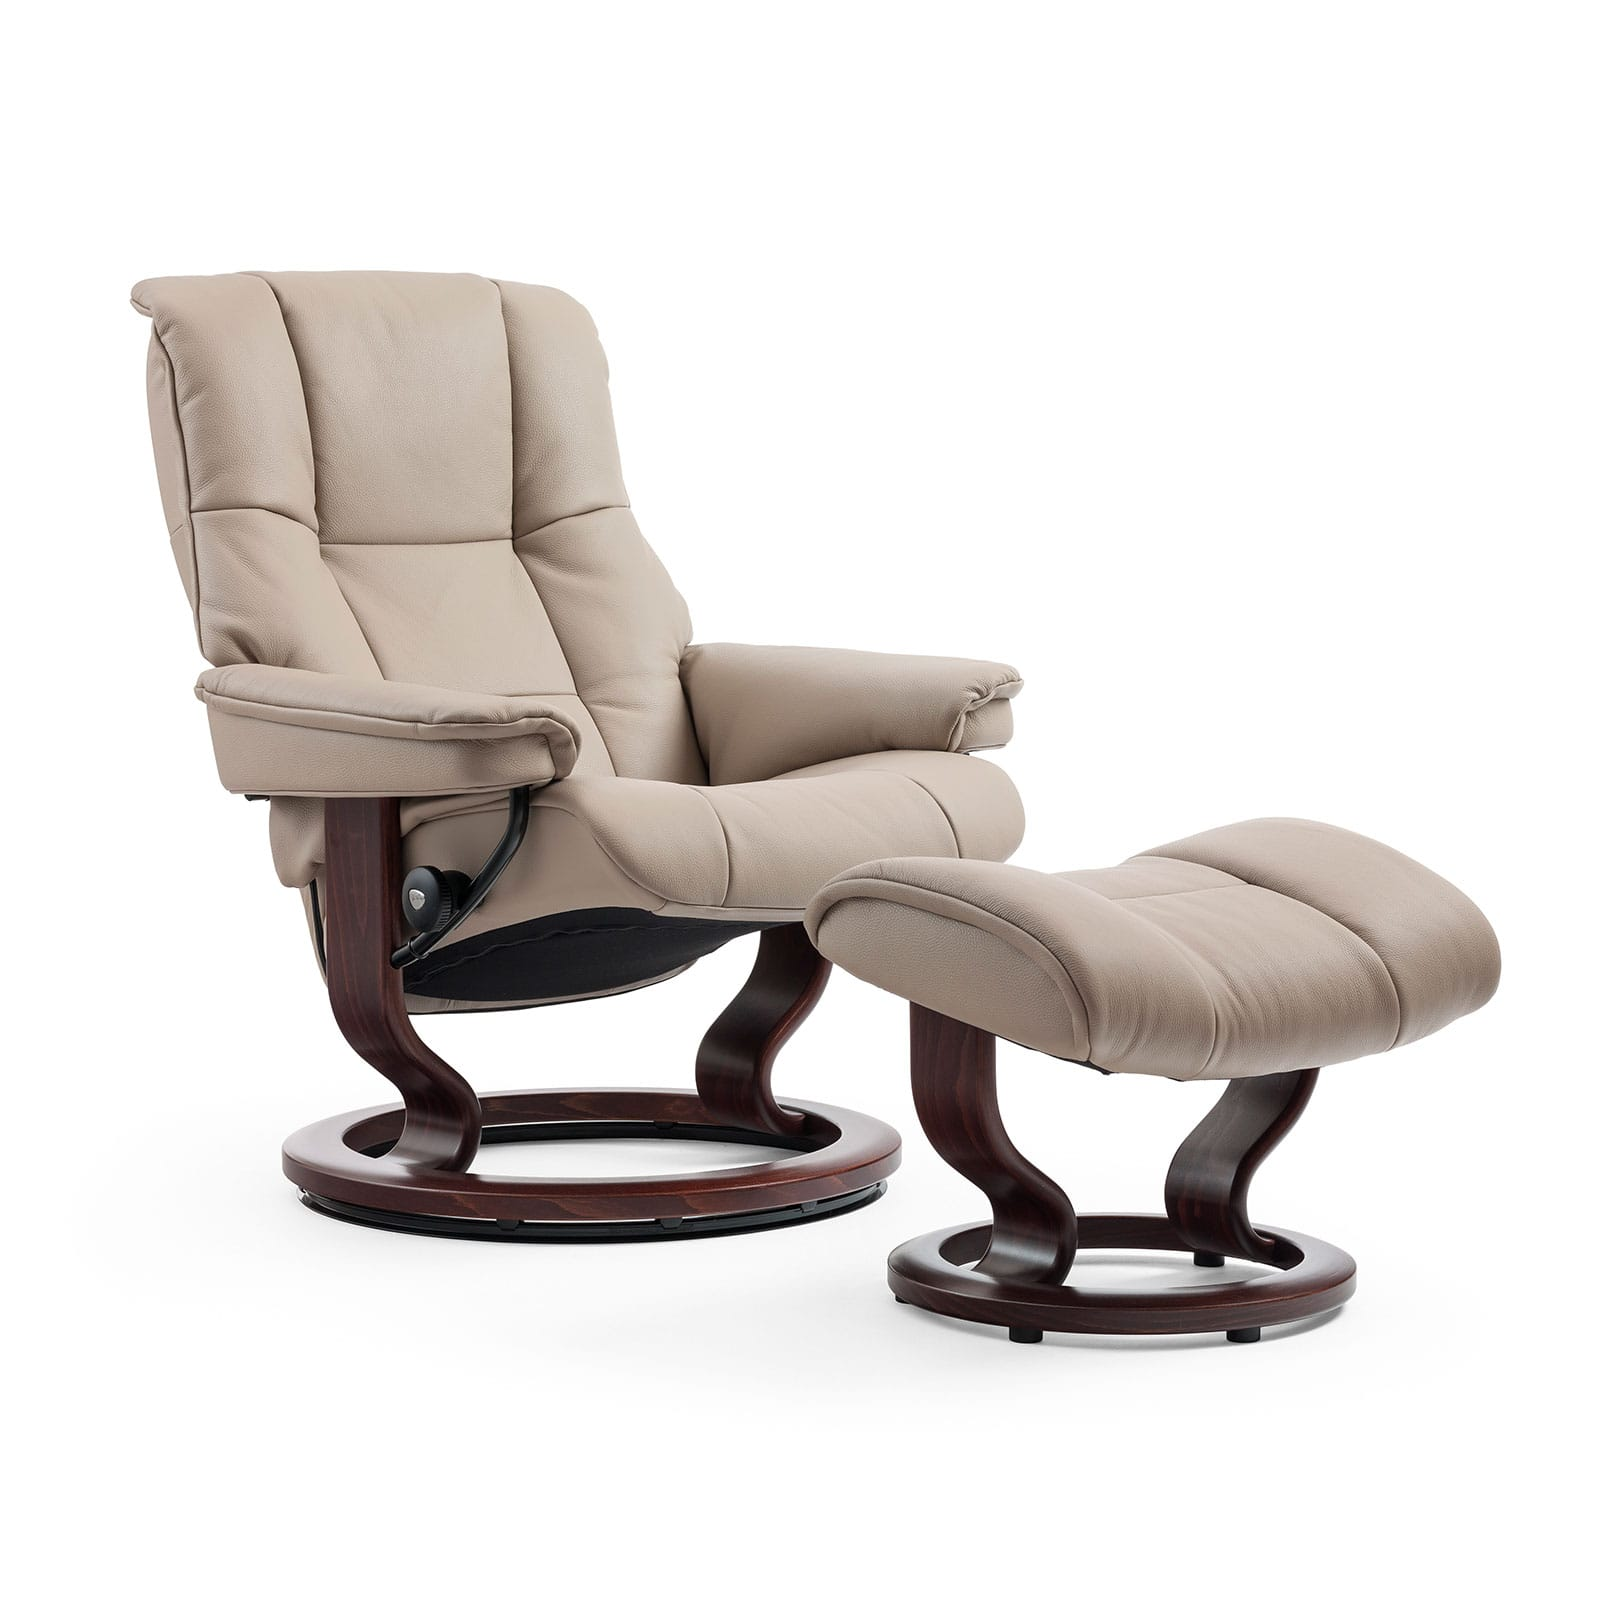 Stressless Sessel Höffner Stressless Sessel Mayfair Cori Beige Classic Braun Hocker